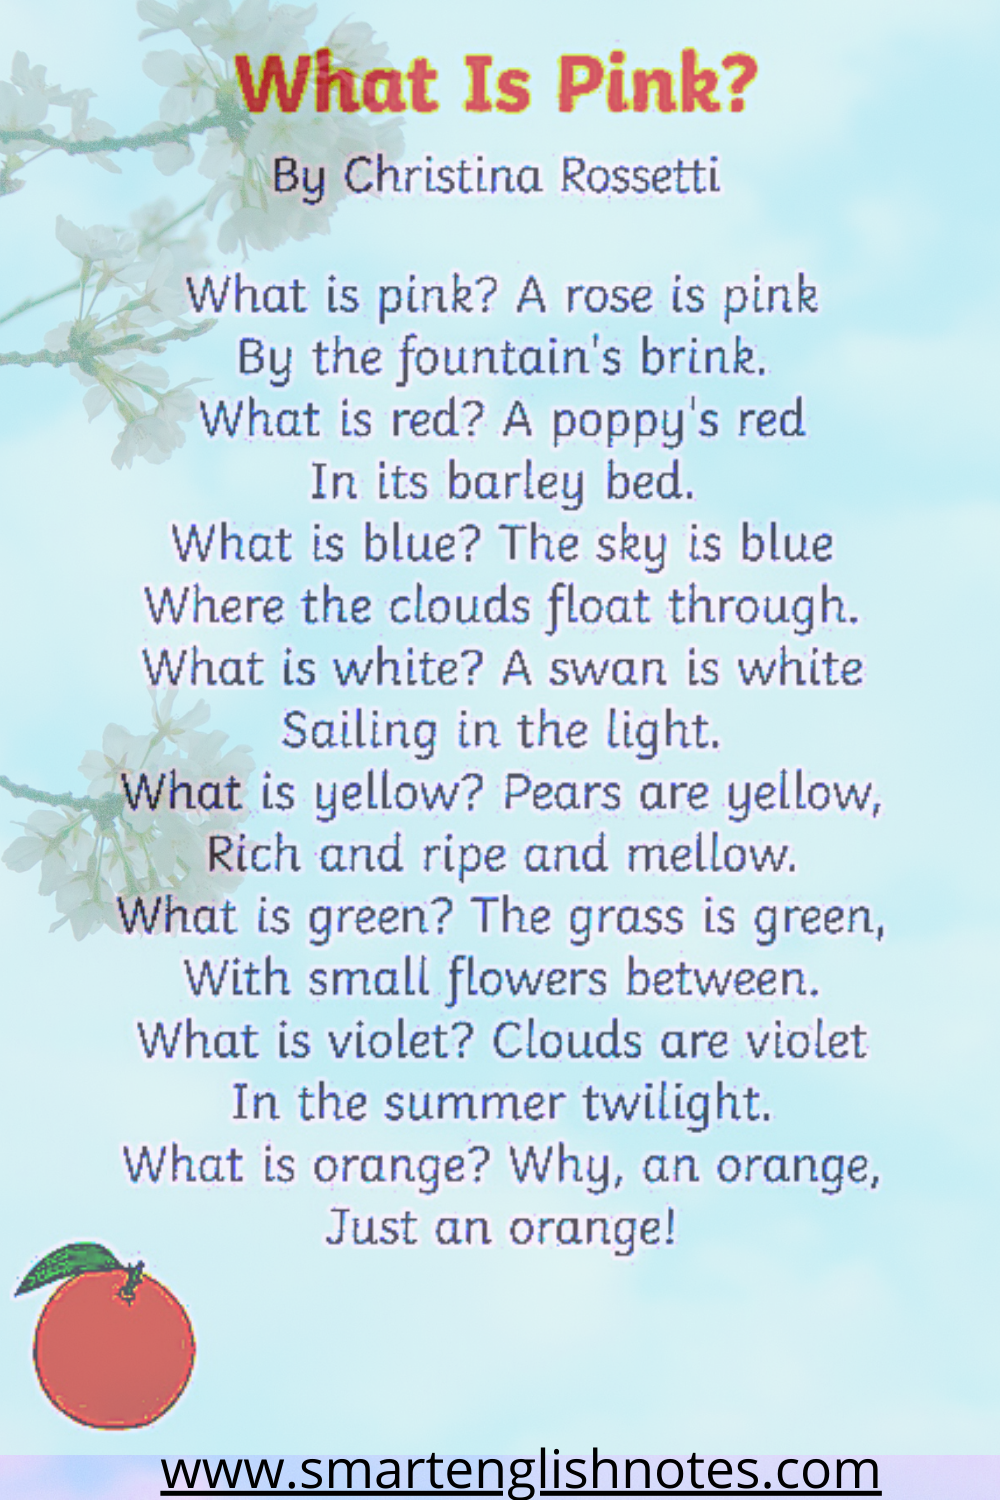 What is Pink